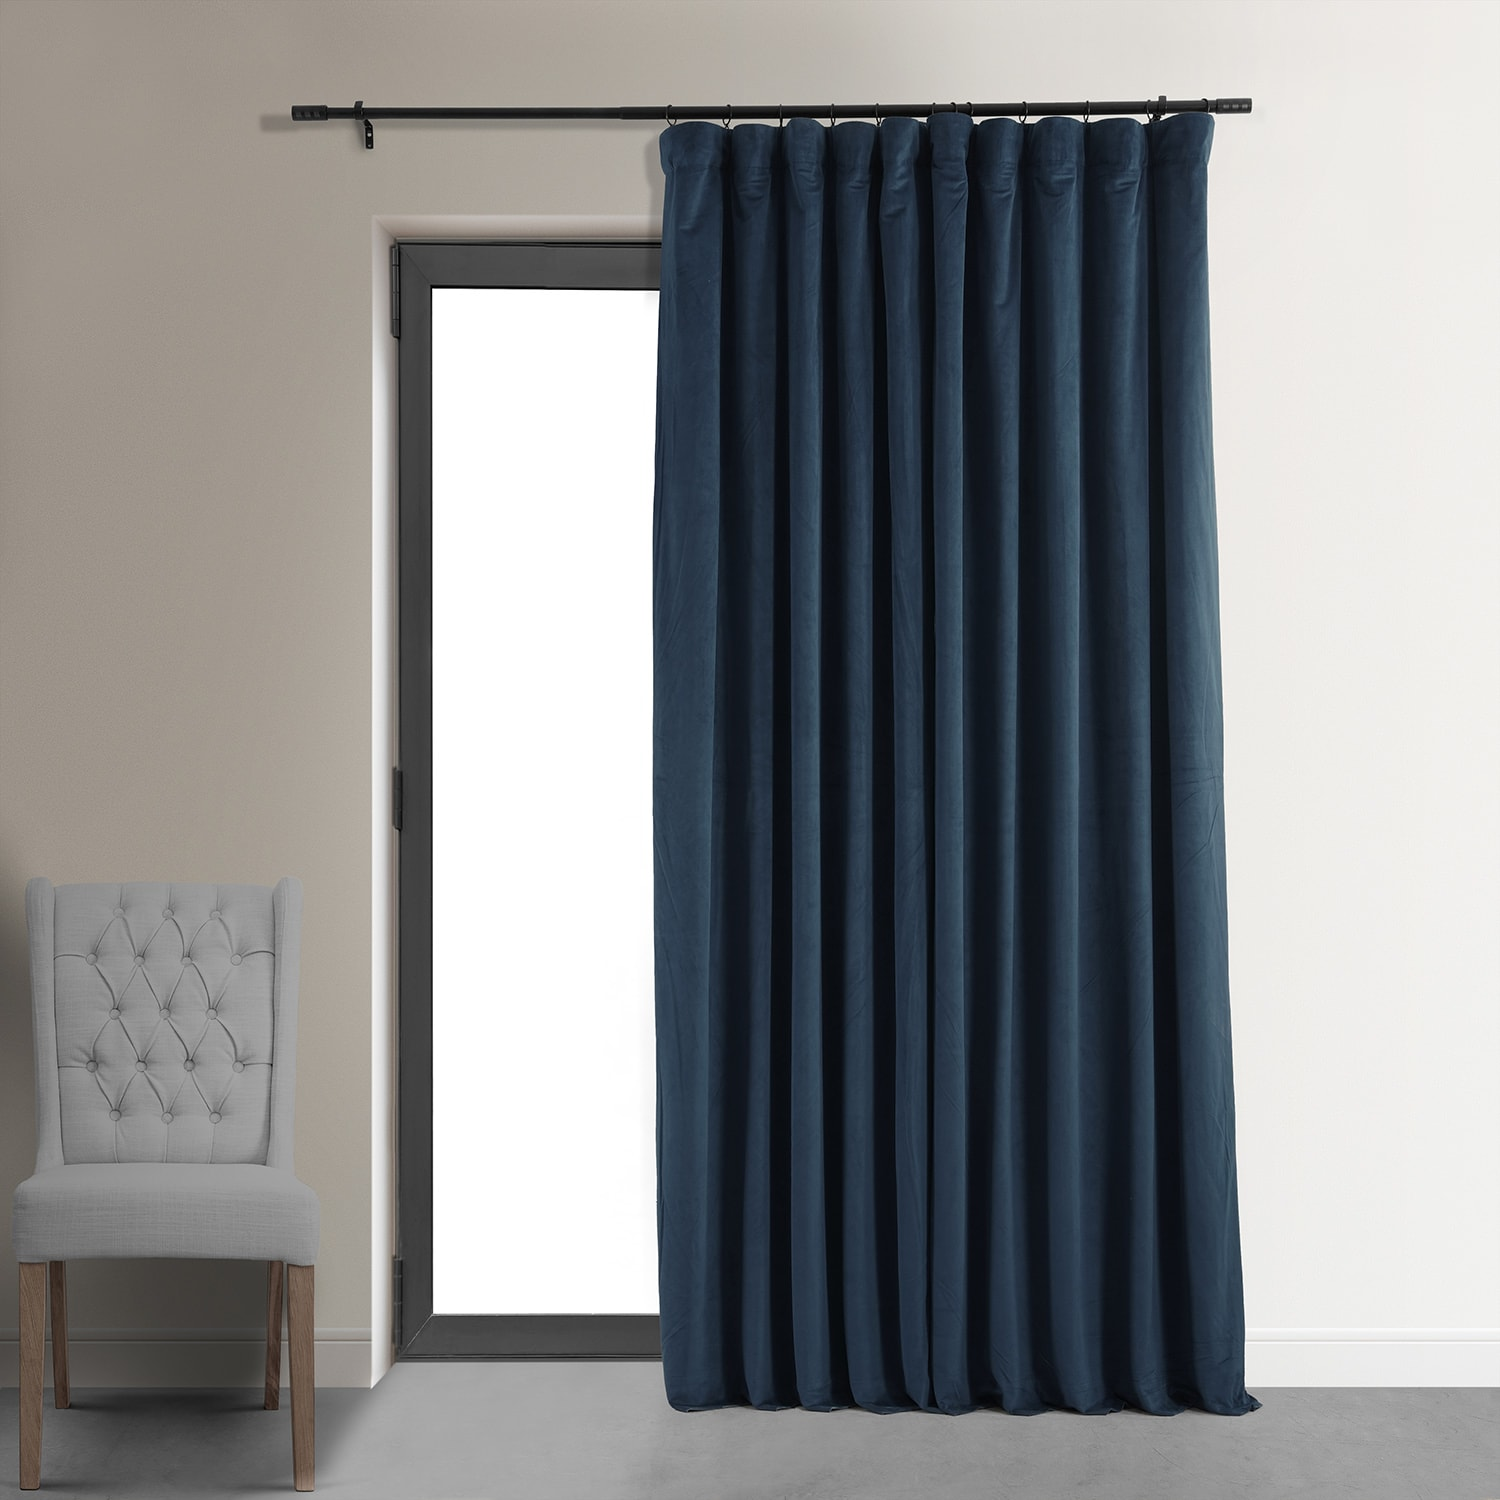 104 Inch Curtains Signature Midnight Blue Extra Wide Velvet Blackout Pole Pocket Curtain